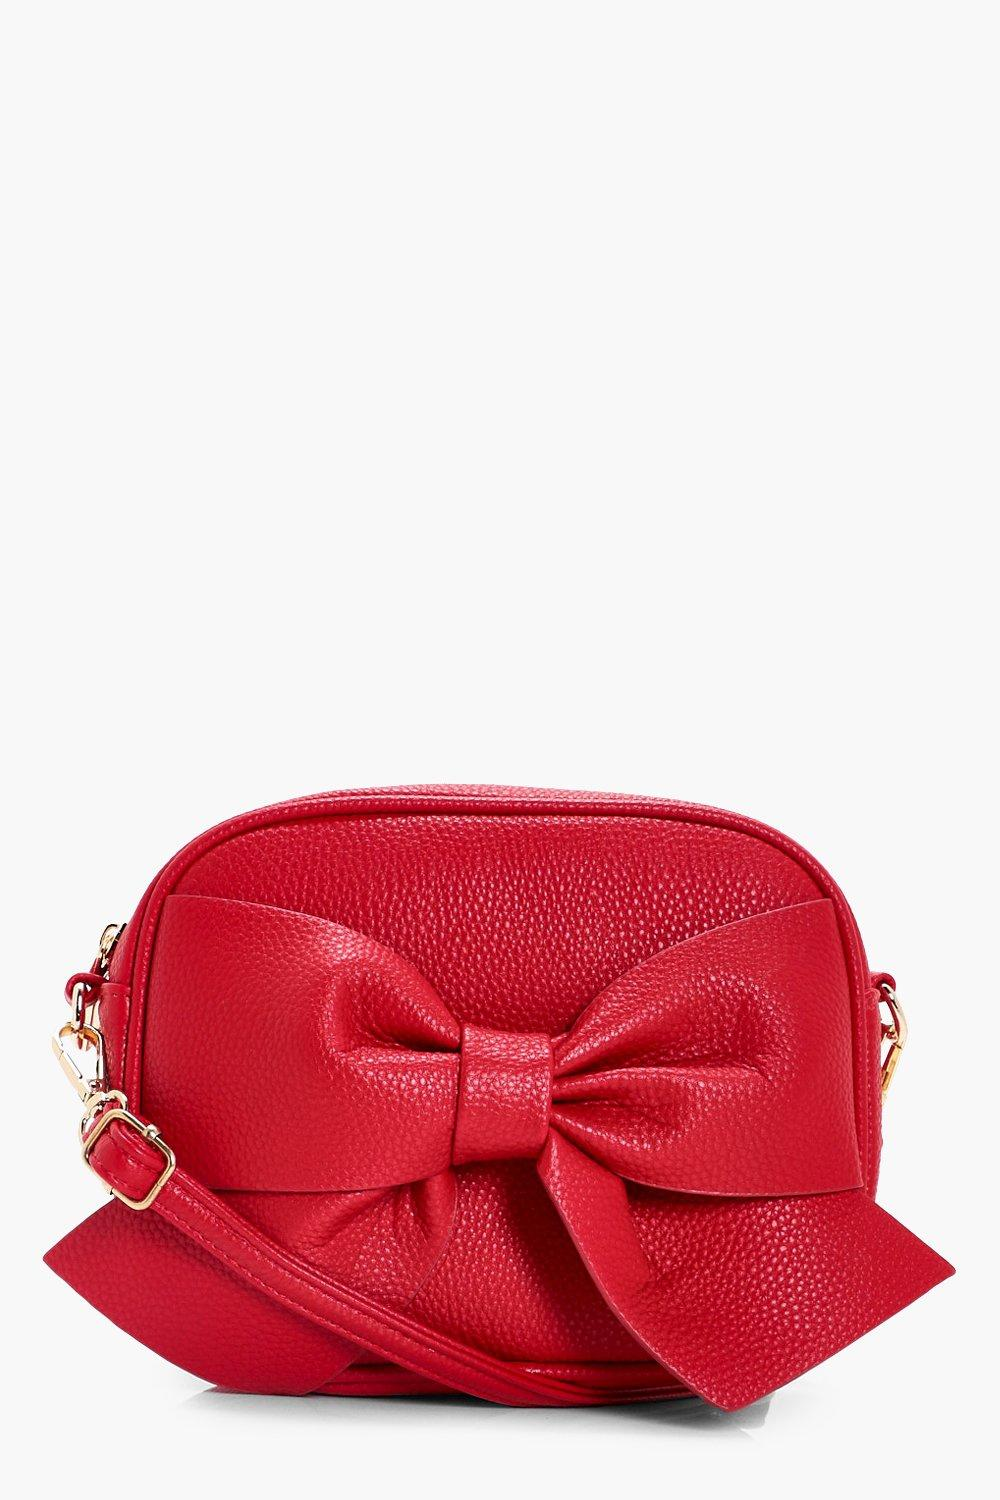 Bow Front Cross Body Bag - red - Millie Bow Front